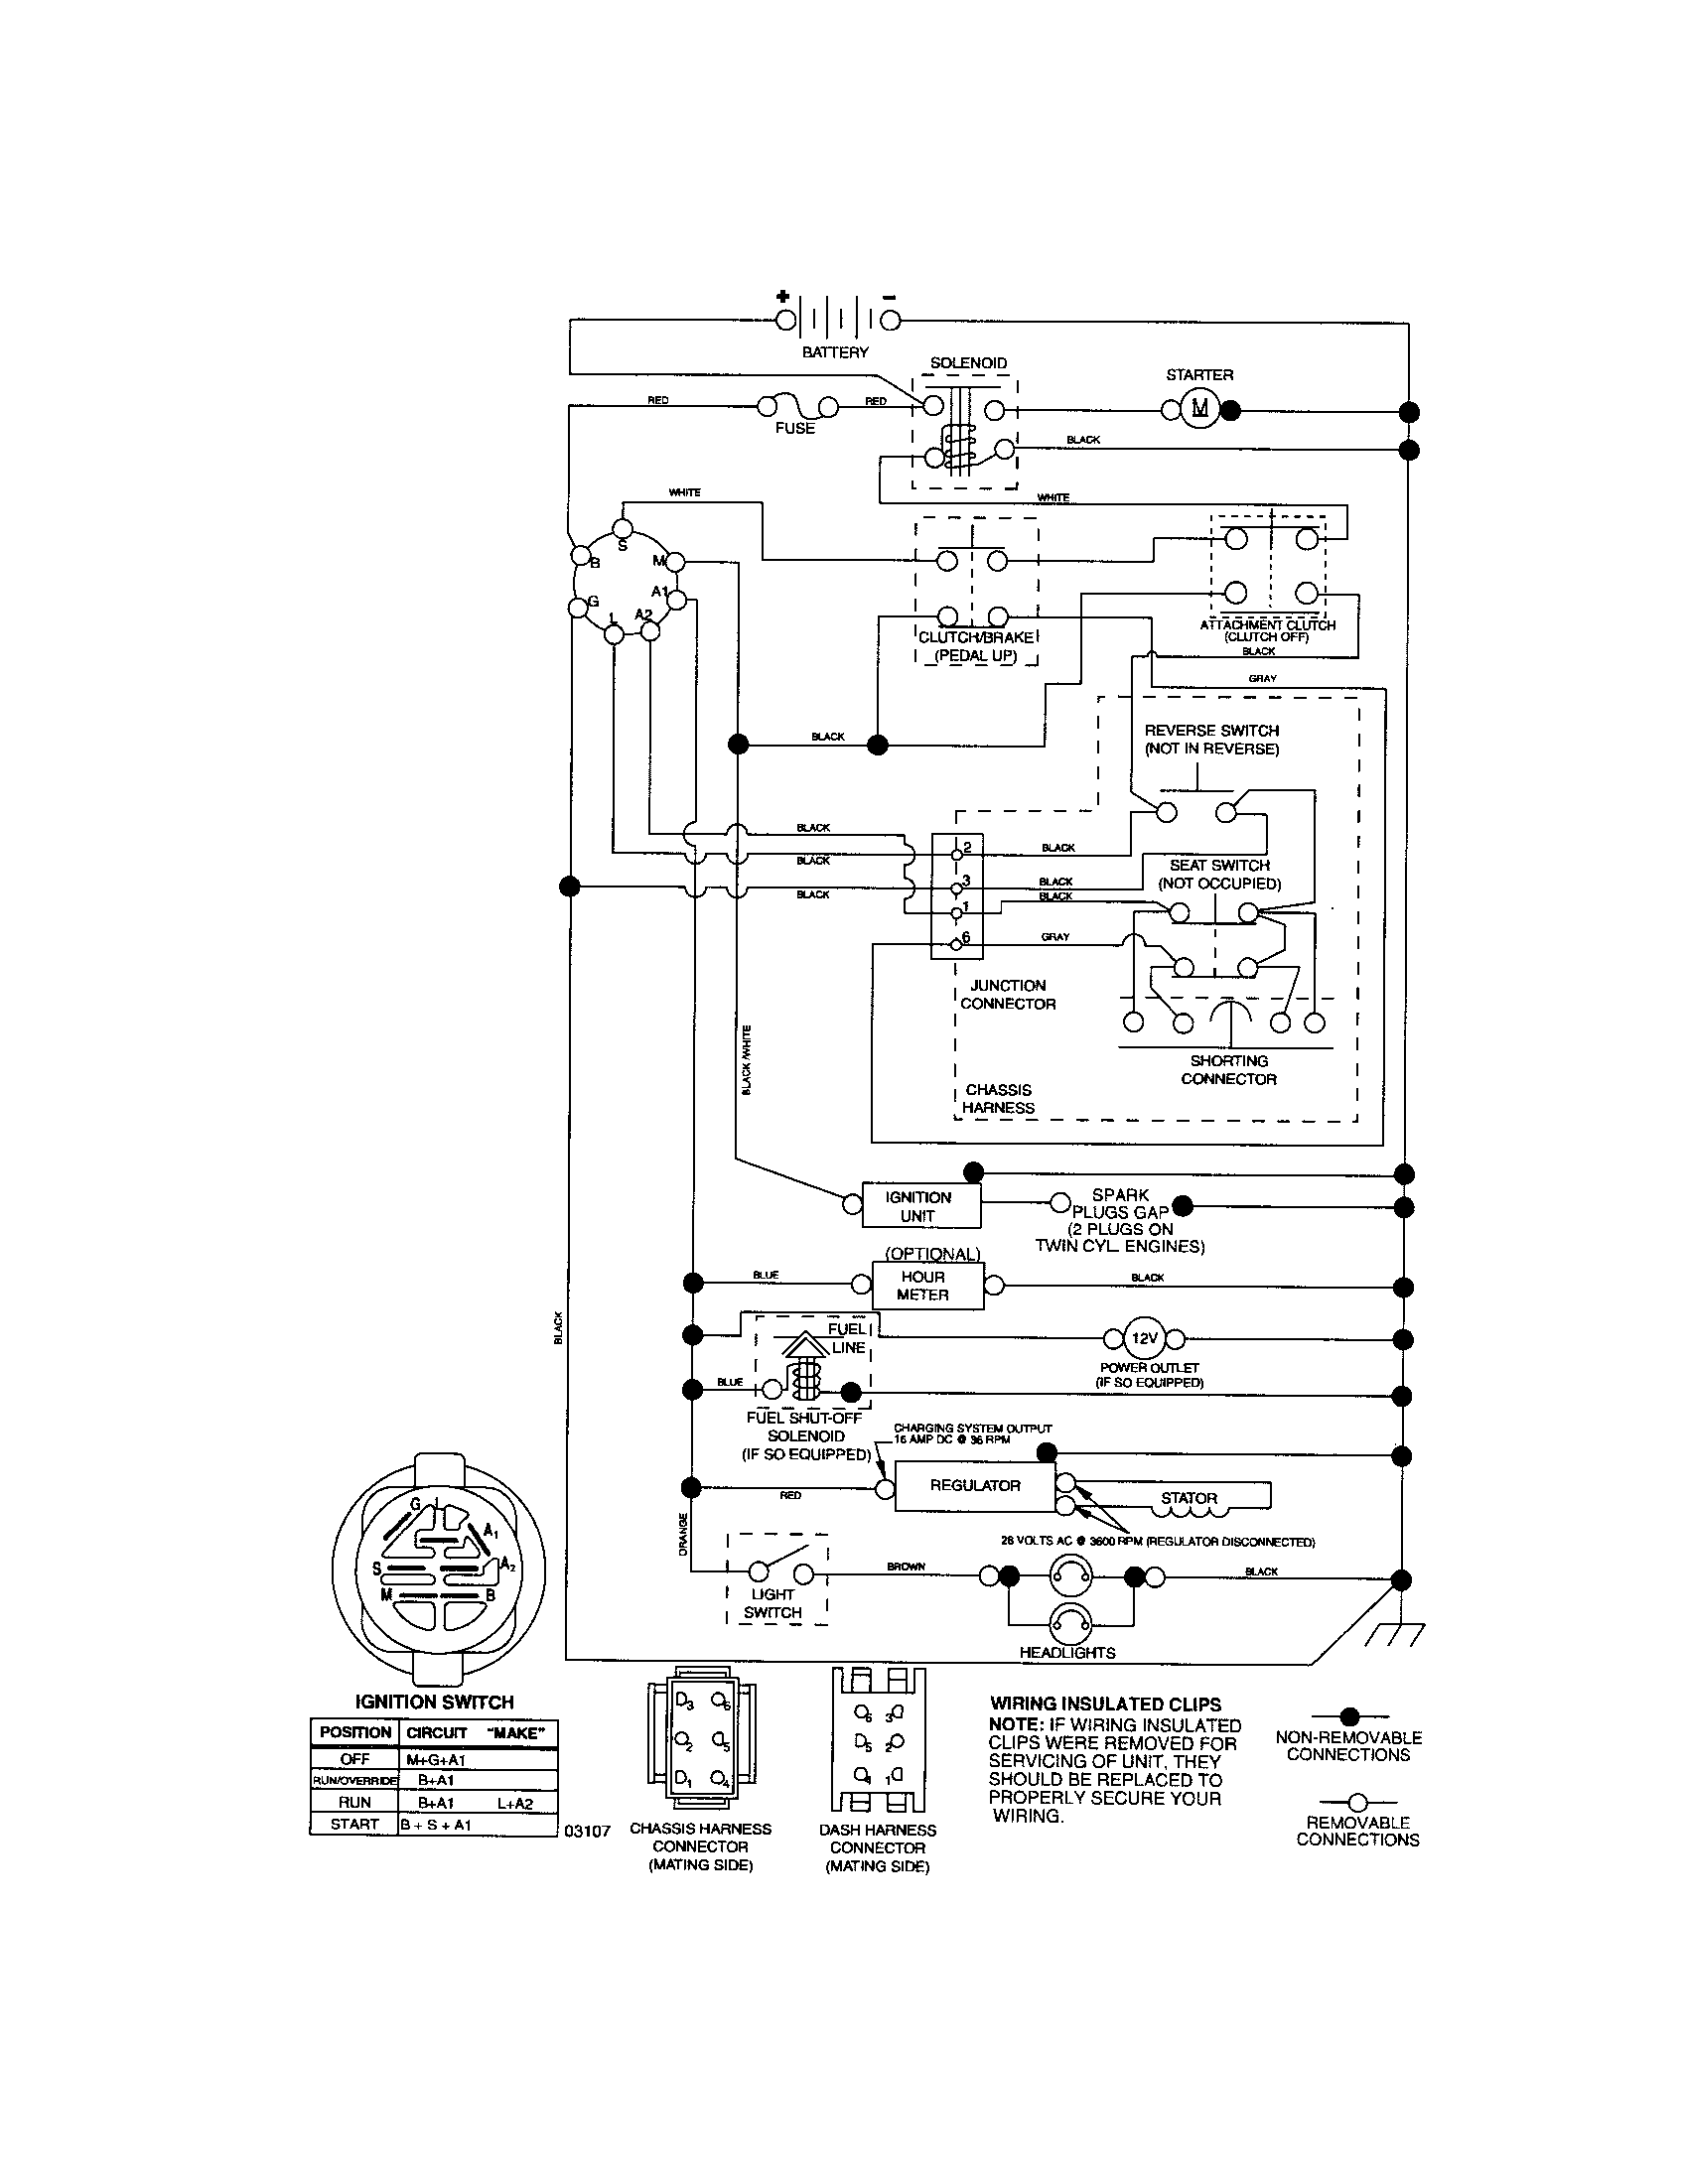 small resolution of craftsman riding mower electrical diagram wiring diagram craftsman craftsman garage door opener wiring schematic craftsman riding